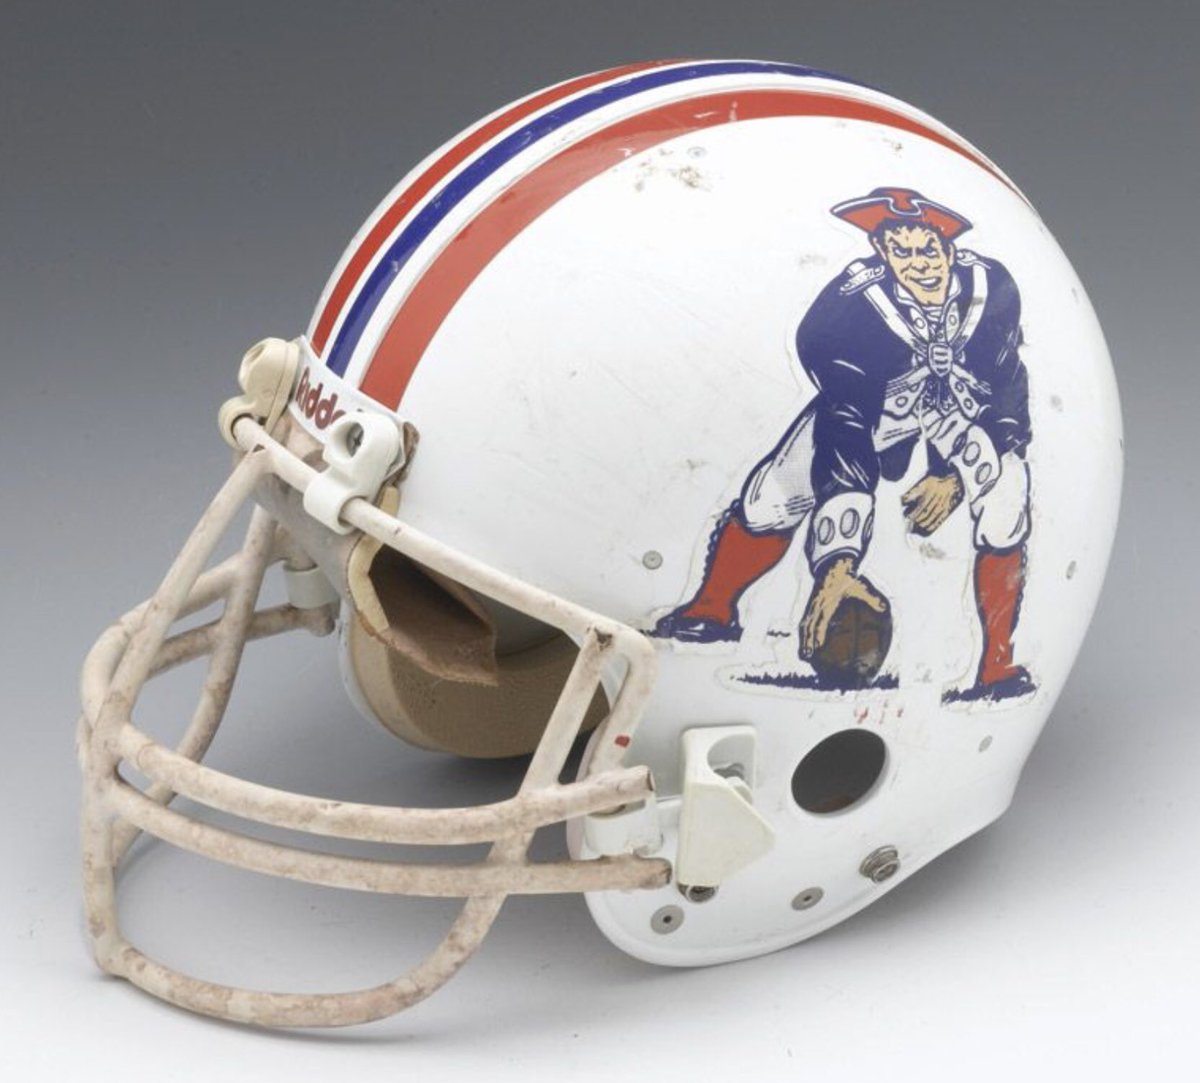 Happy 4th of July   #Patriots #70s #Boston #NFL  #4thofJuly #IndependenceDay2020 #USApic.twitter.com/54W3FYHfXi